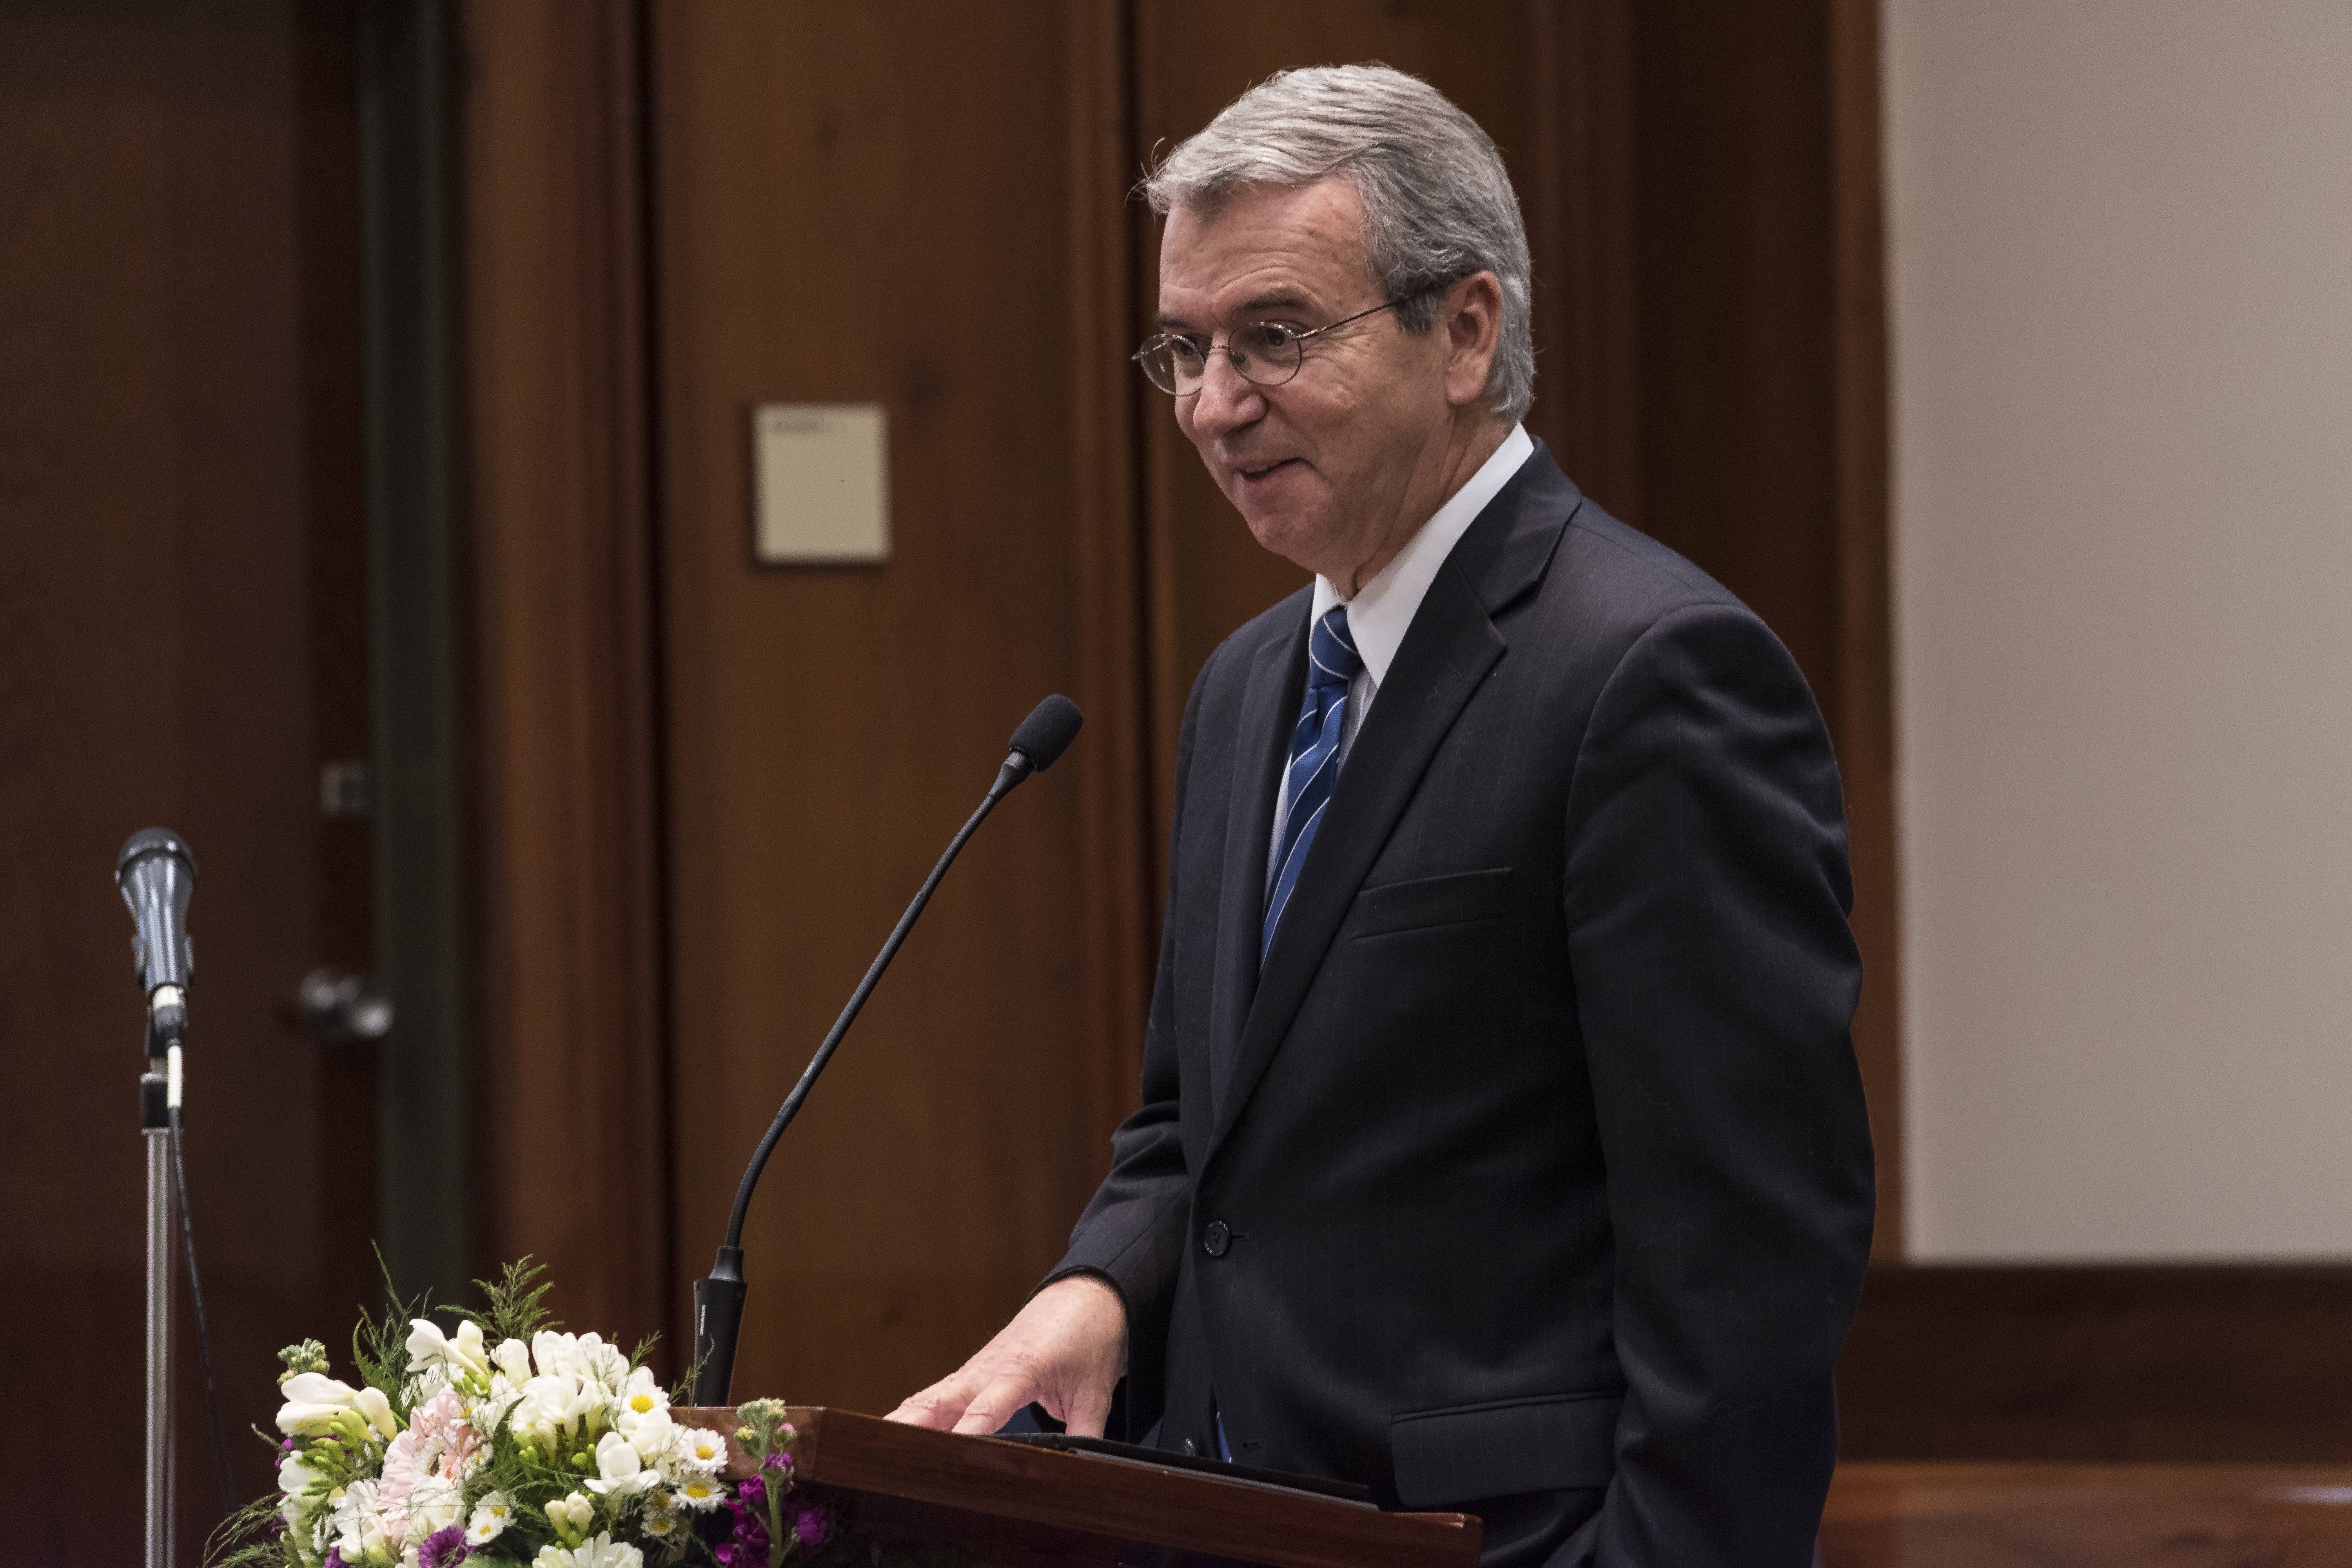 Elder Carlos A. Godoy of the Presidency of the Seventy speaks at a meeting while accompanying Elder Ronald A. Rasband of the Quorum of the Twelve on a nine-day assignment to the Church's South American South Area in late August and early September 2018.